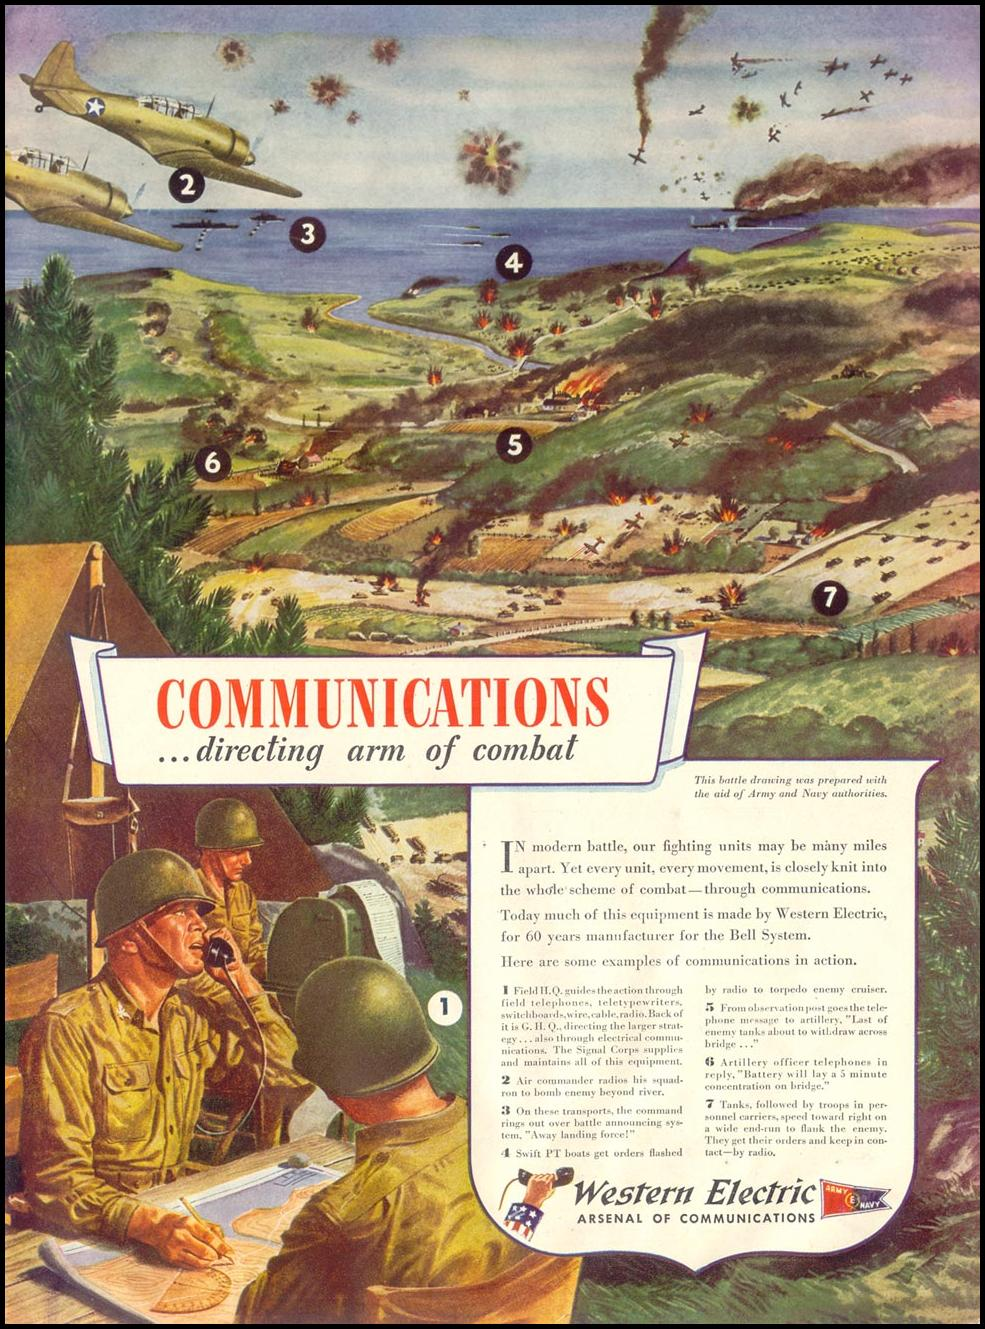 WESTERN ELECTRIC WARTIME PRODUCTION